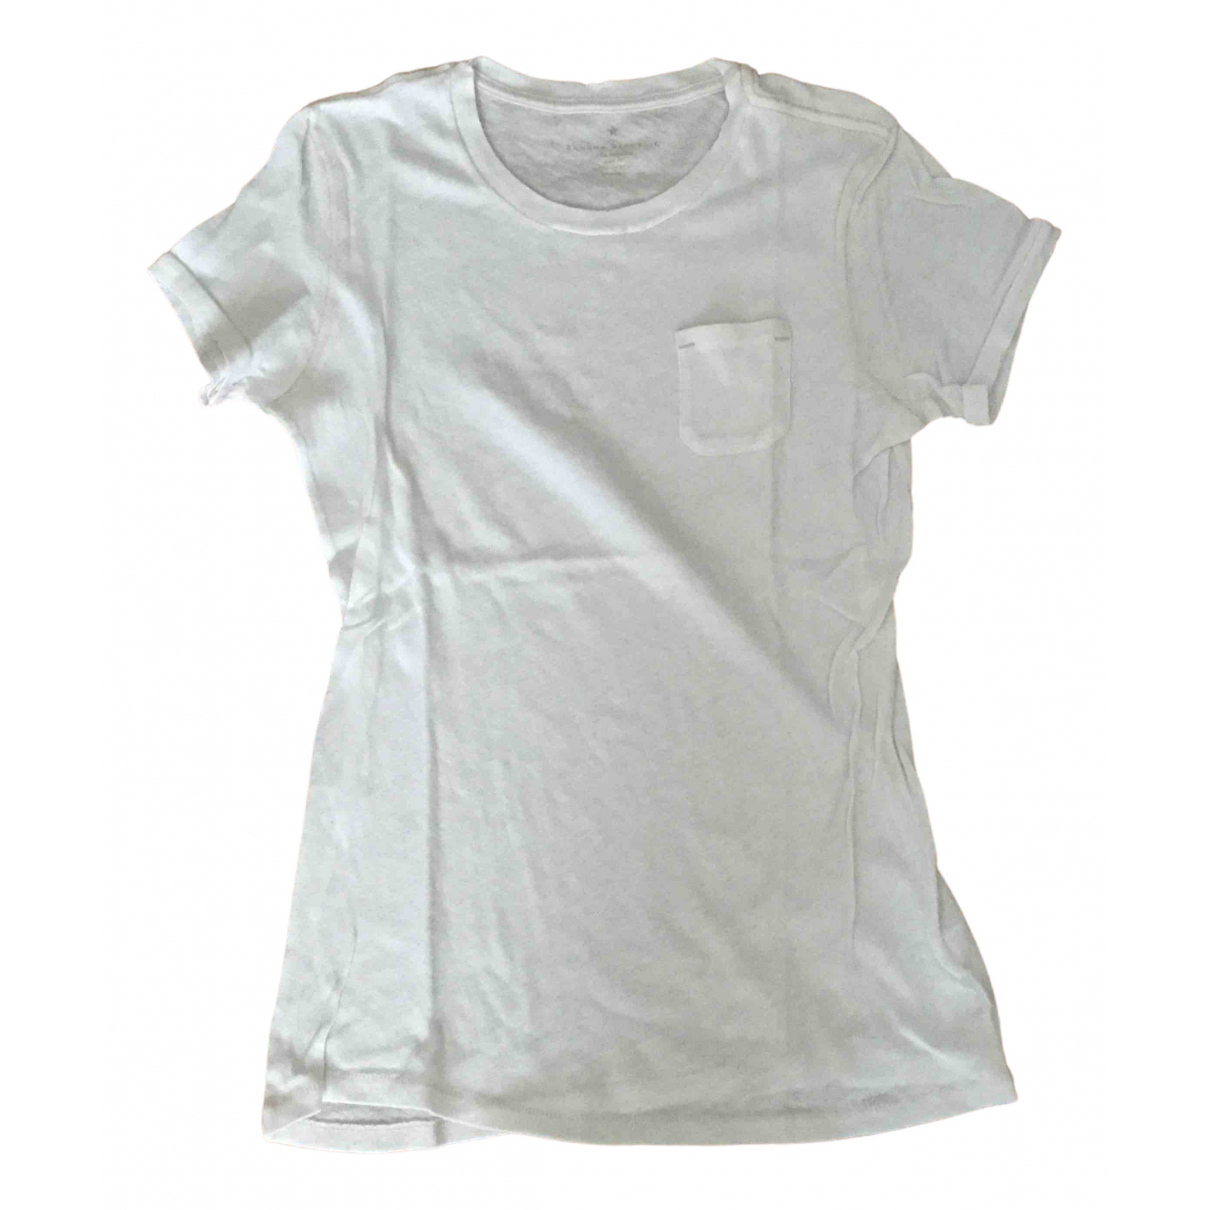 Banana Republic \N White Cotton  top for Women M International